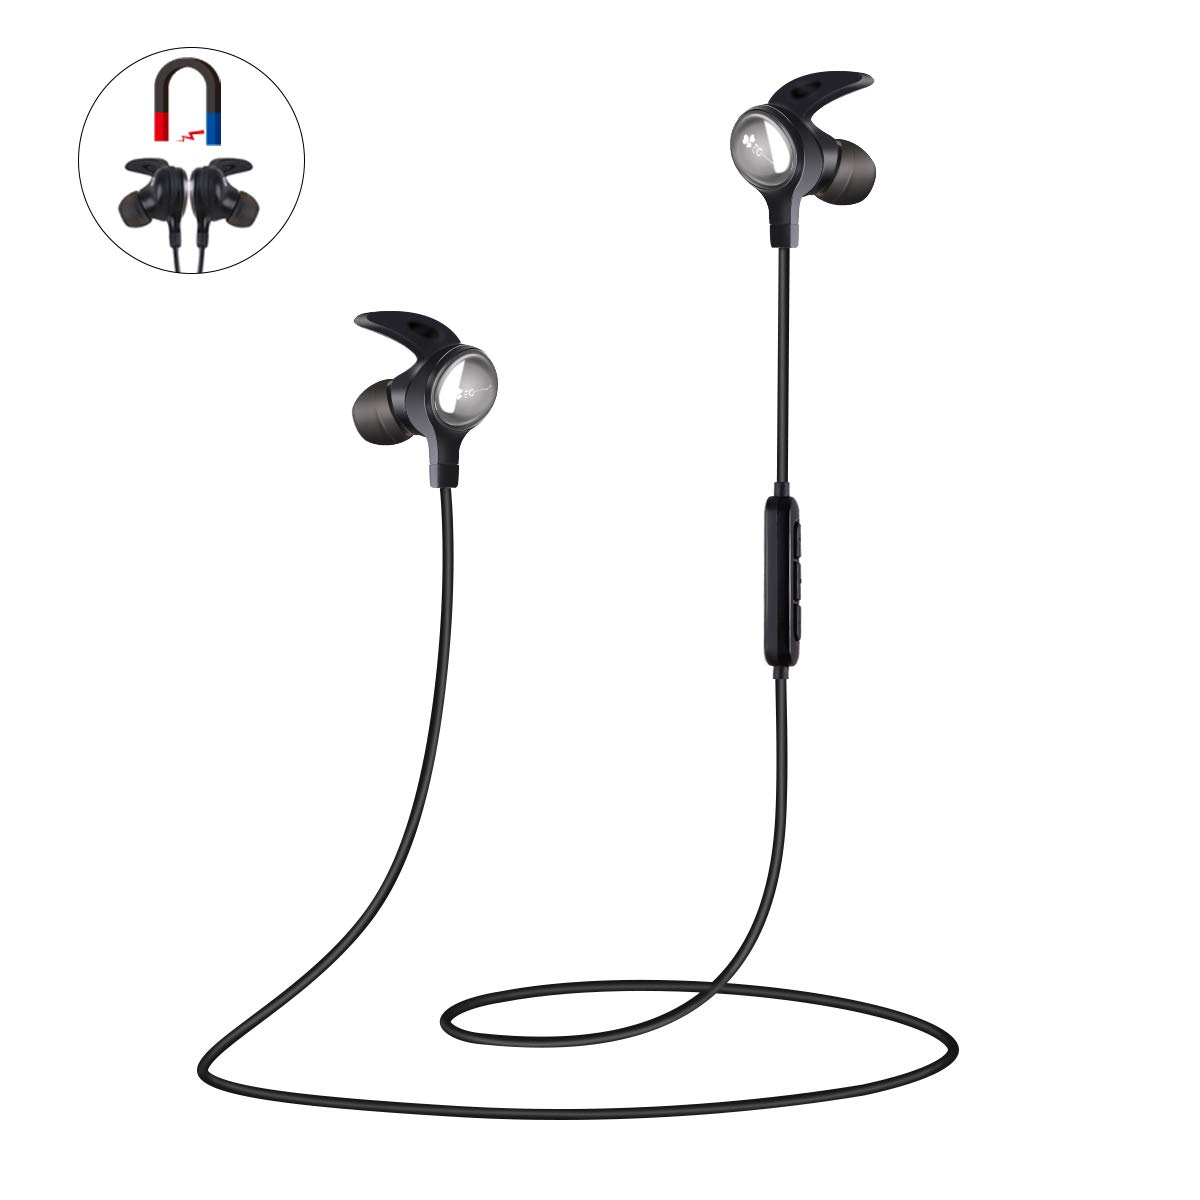 Bluetooth Headphones, IE Crown Wireless Running Earphone Bluetooth 4.1, Magnetic In-Ear Sport Headphones with Mic, Noise Cancelling, HiFi Stereo Sound Sports Earbuds, Working more than 6 Hours Fit for Sports, Gym, Travelling (Black).